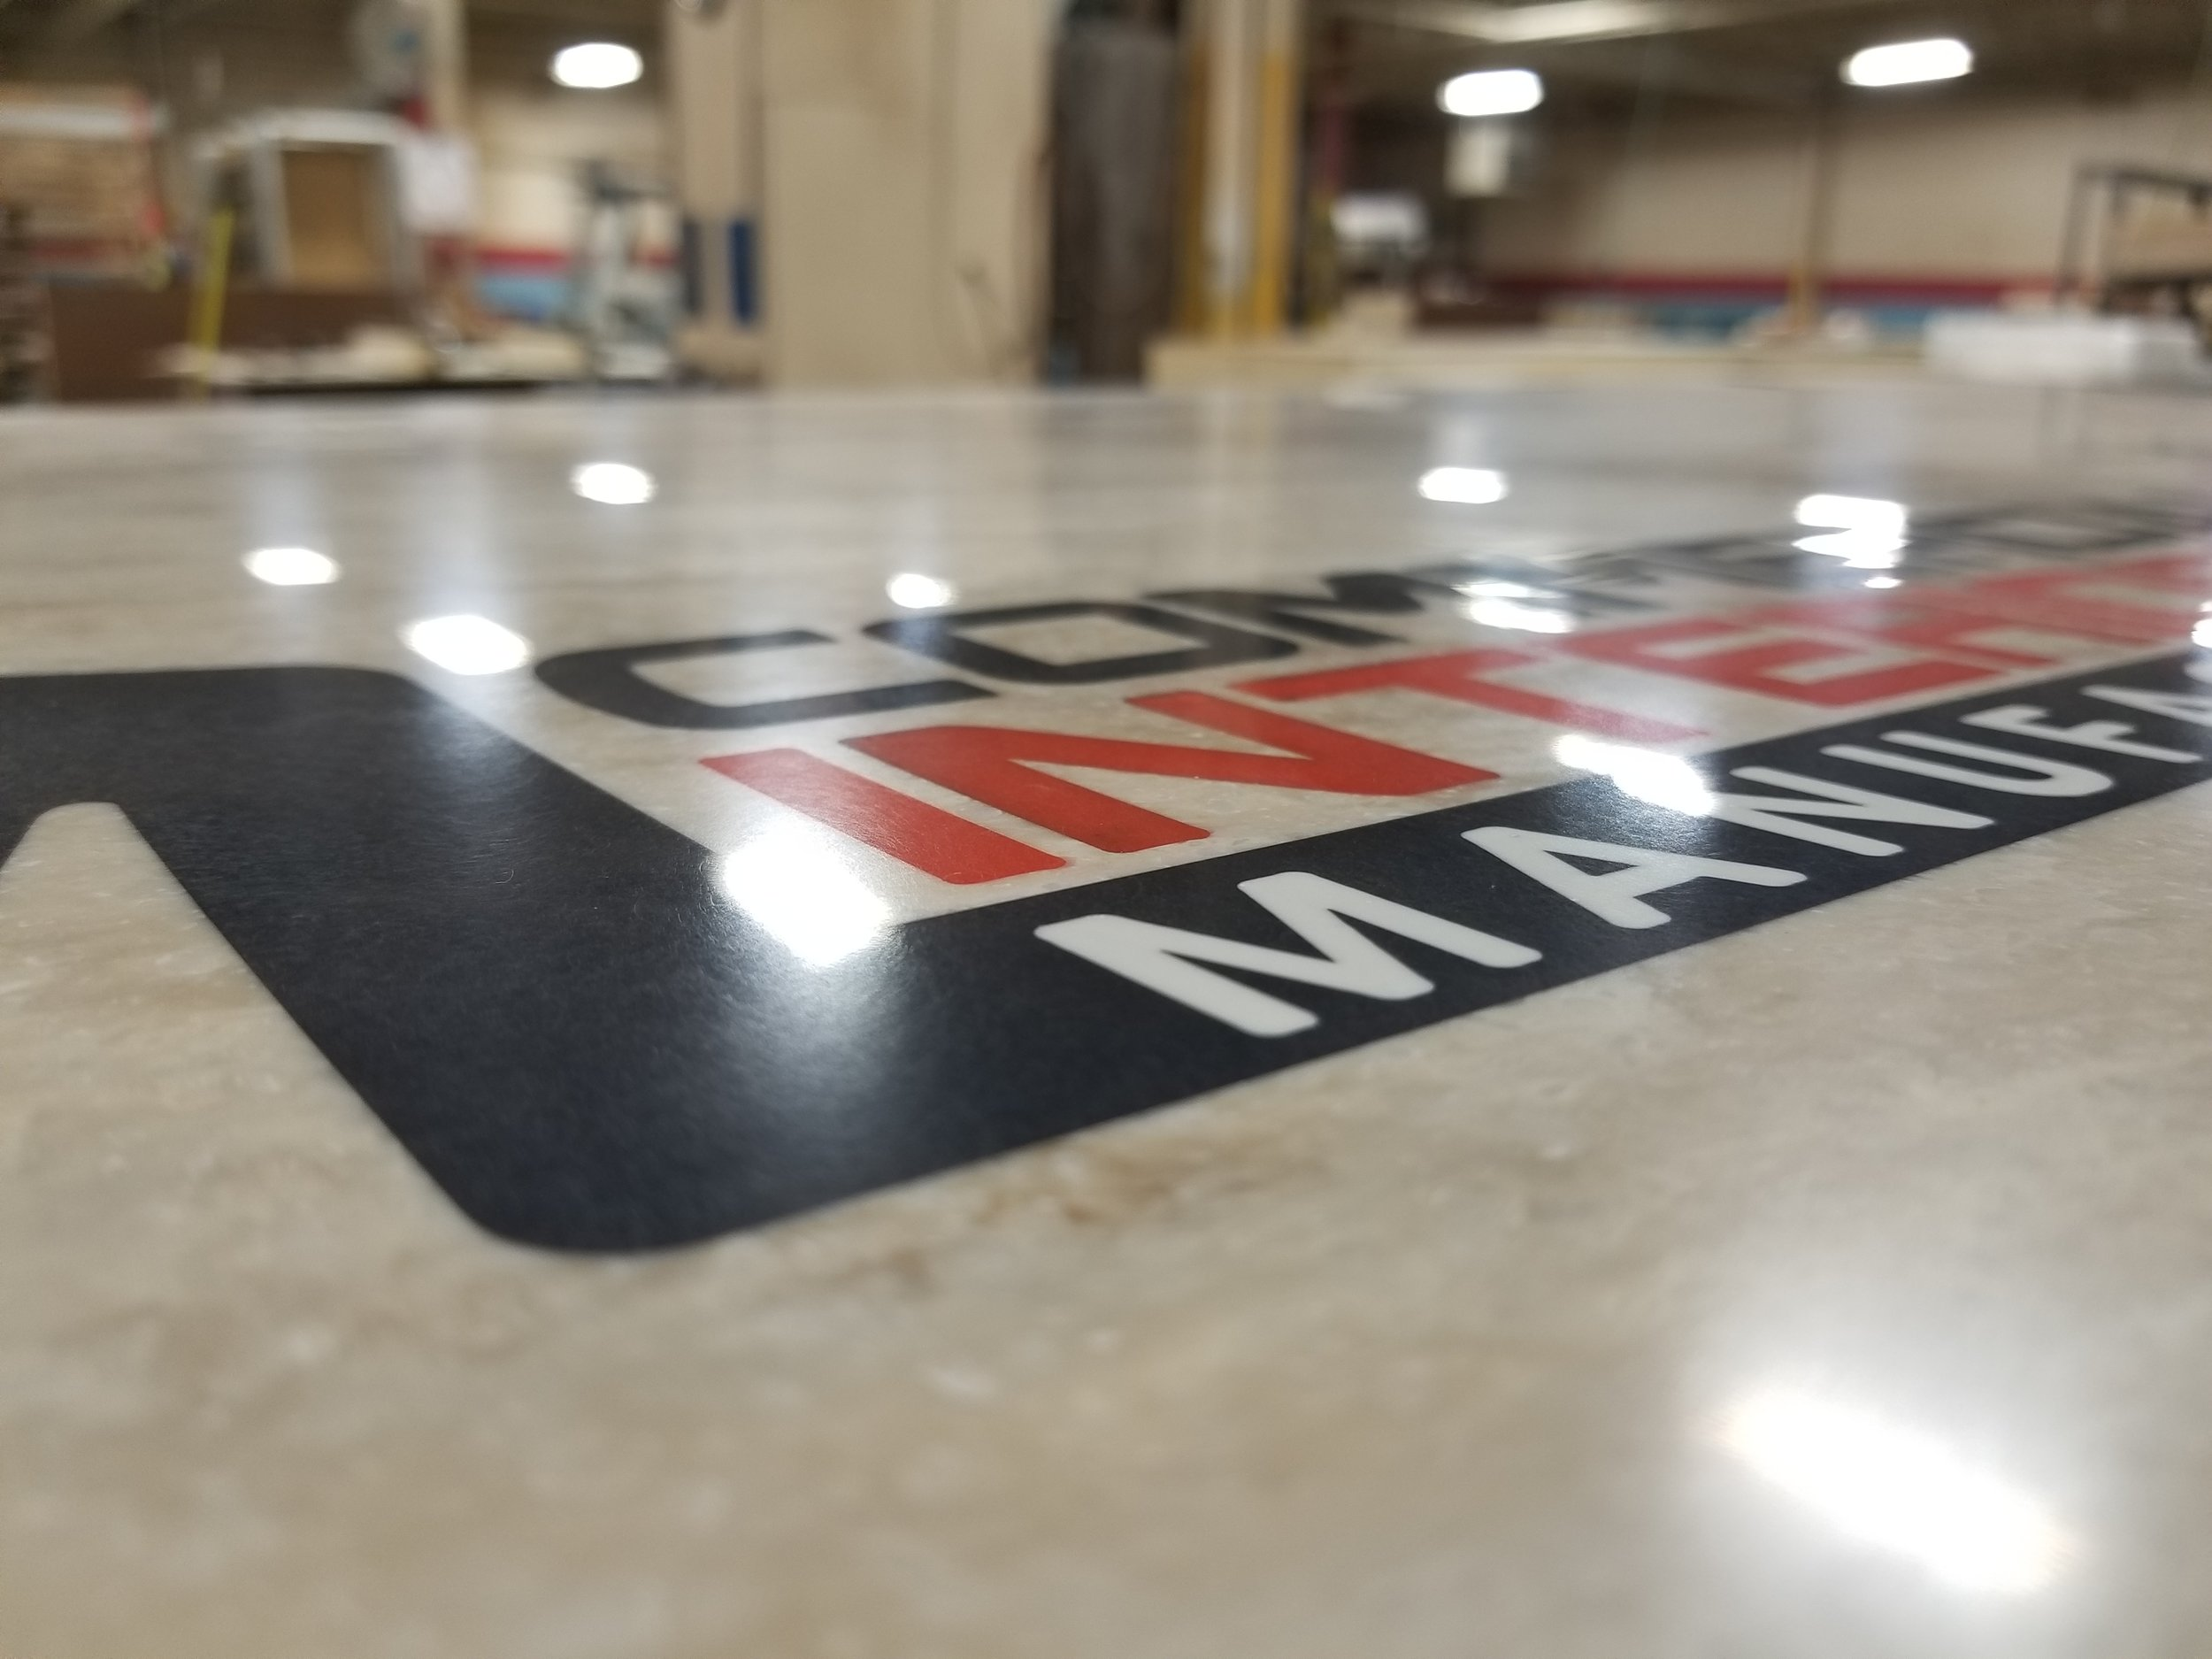 tabletop inlaid with a multi-colored logo